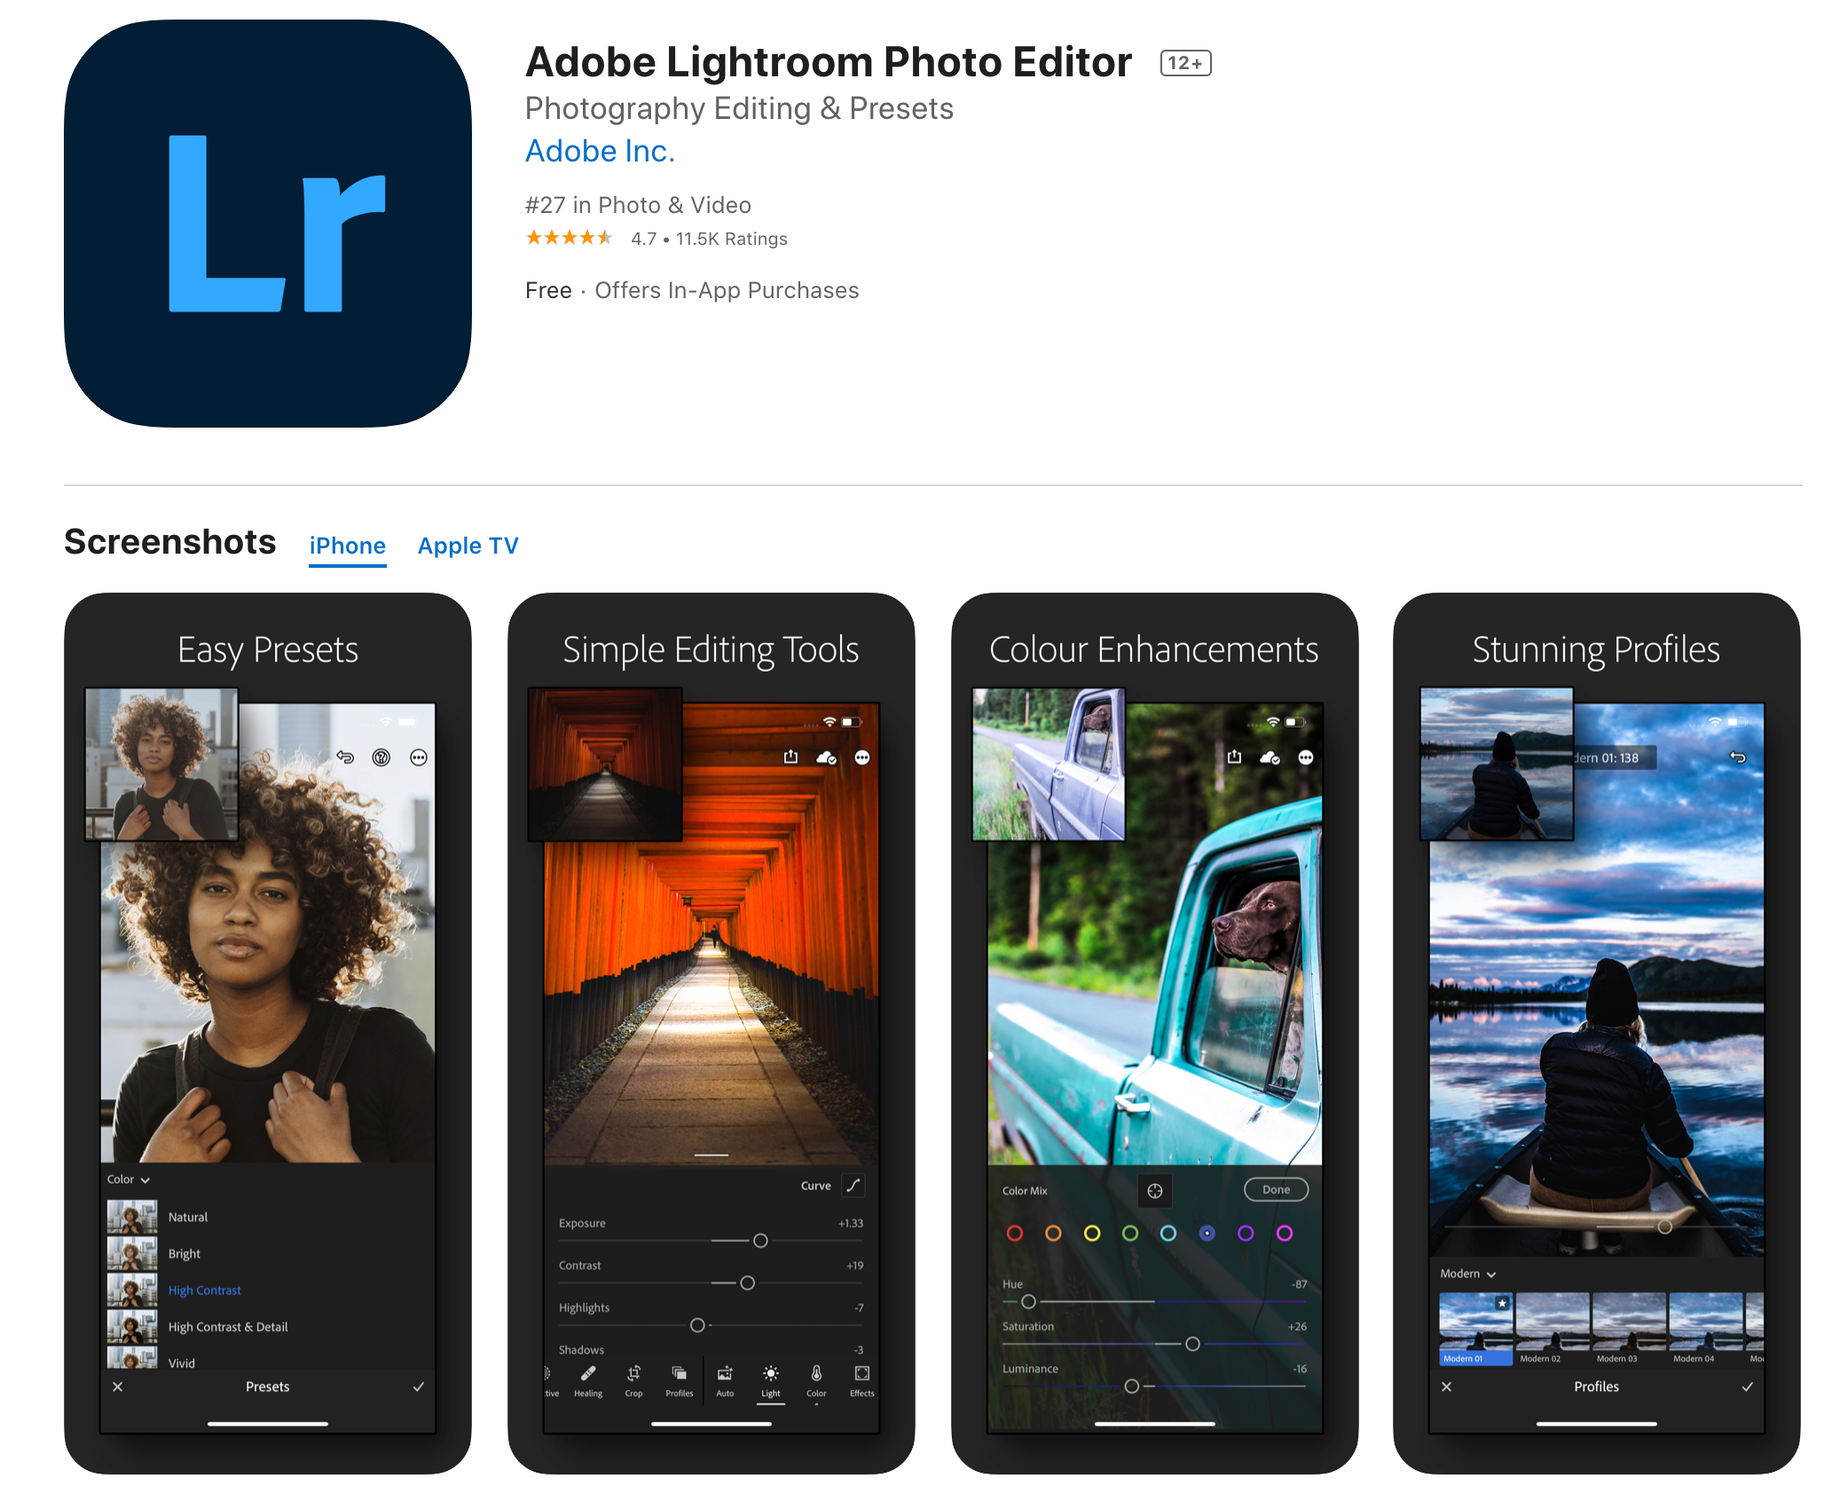 Adobe Lightroom Photo Editing App